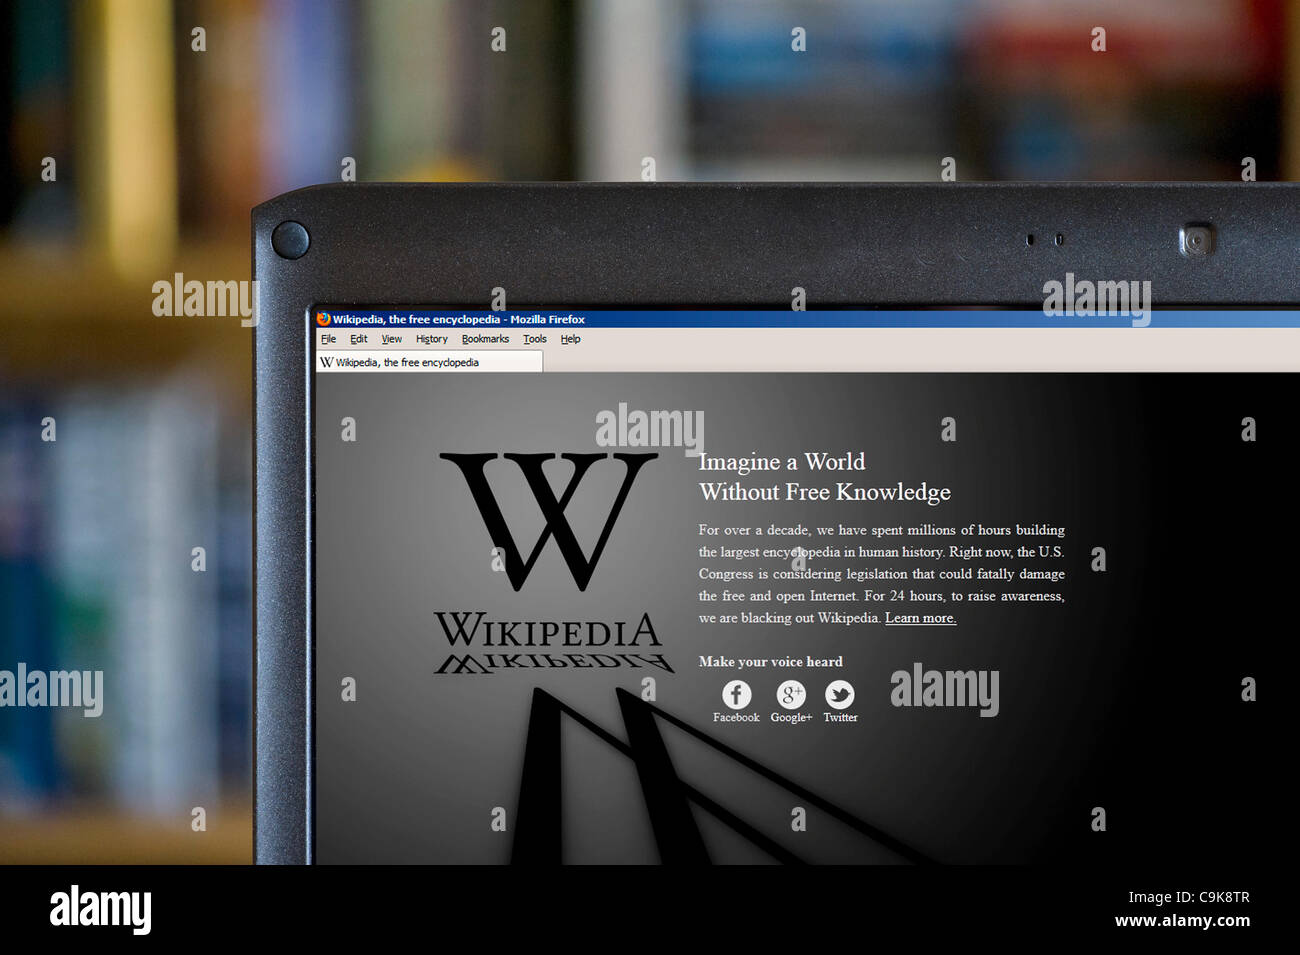 The Wikipedia website on 18th January 2012 showing messag on dark screen due to 24 hour protest black out. shutdown Stock Photo